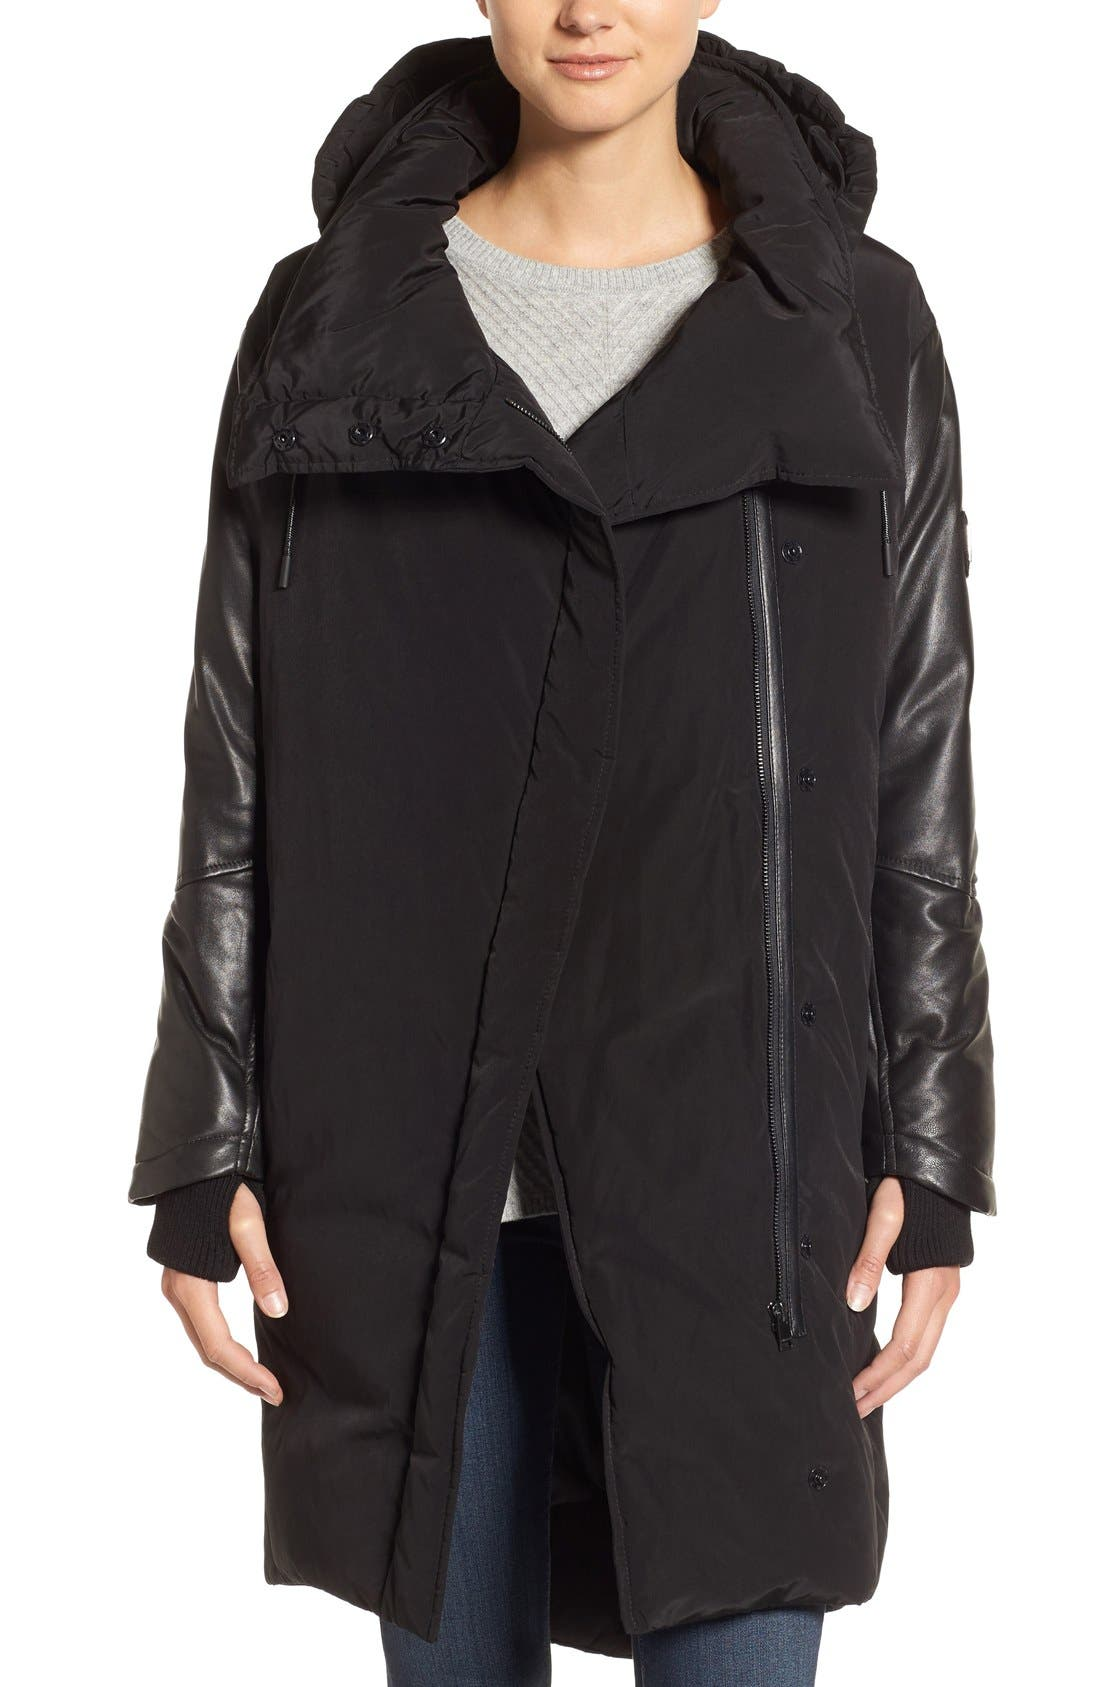 Main Image - LAMARQUE Oversize Down Coat with Leather Trim